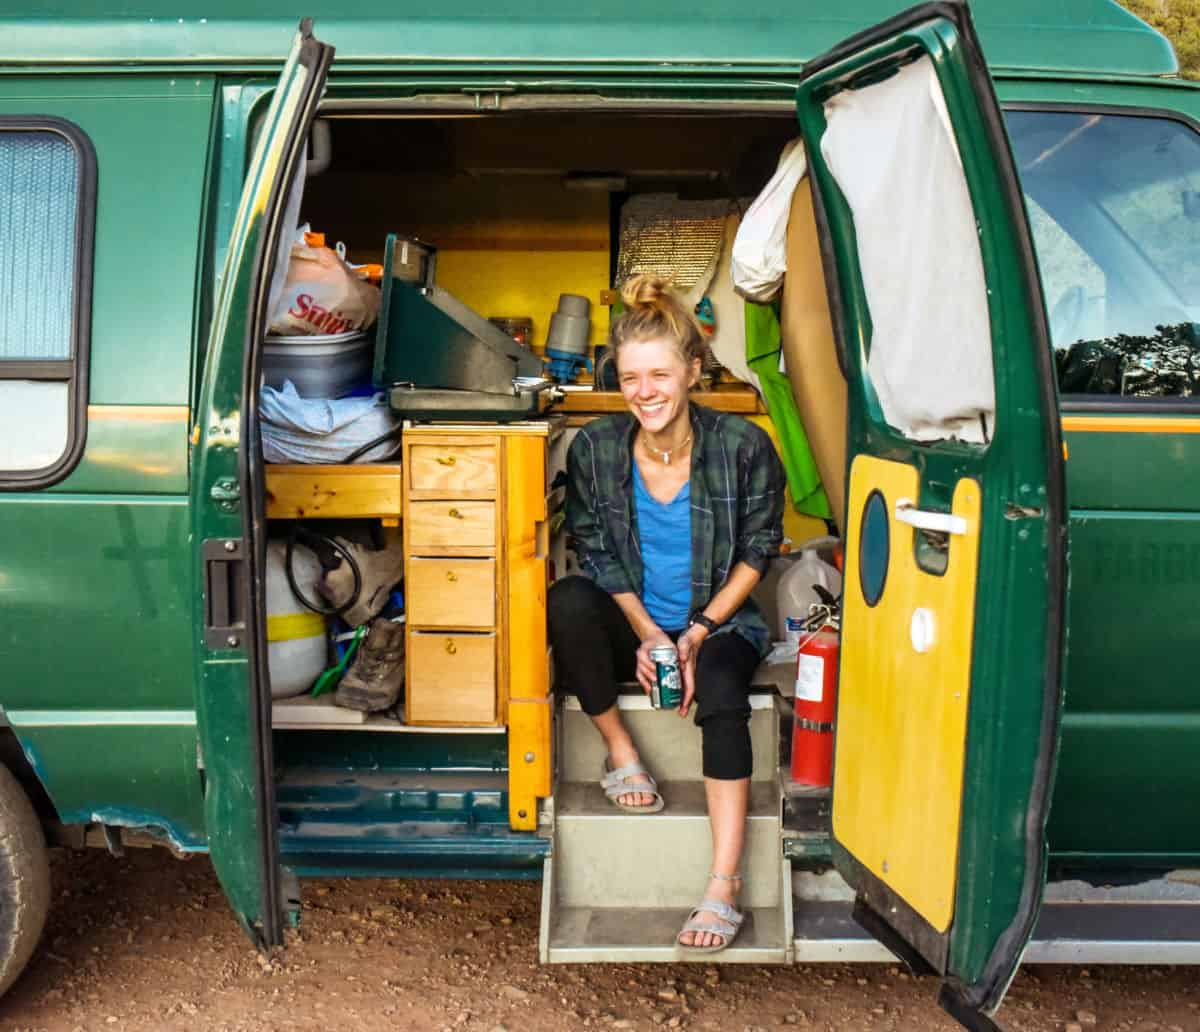 Woman sits inside a campervan during coviid